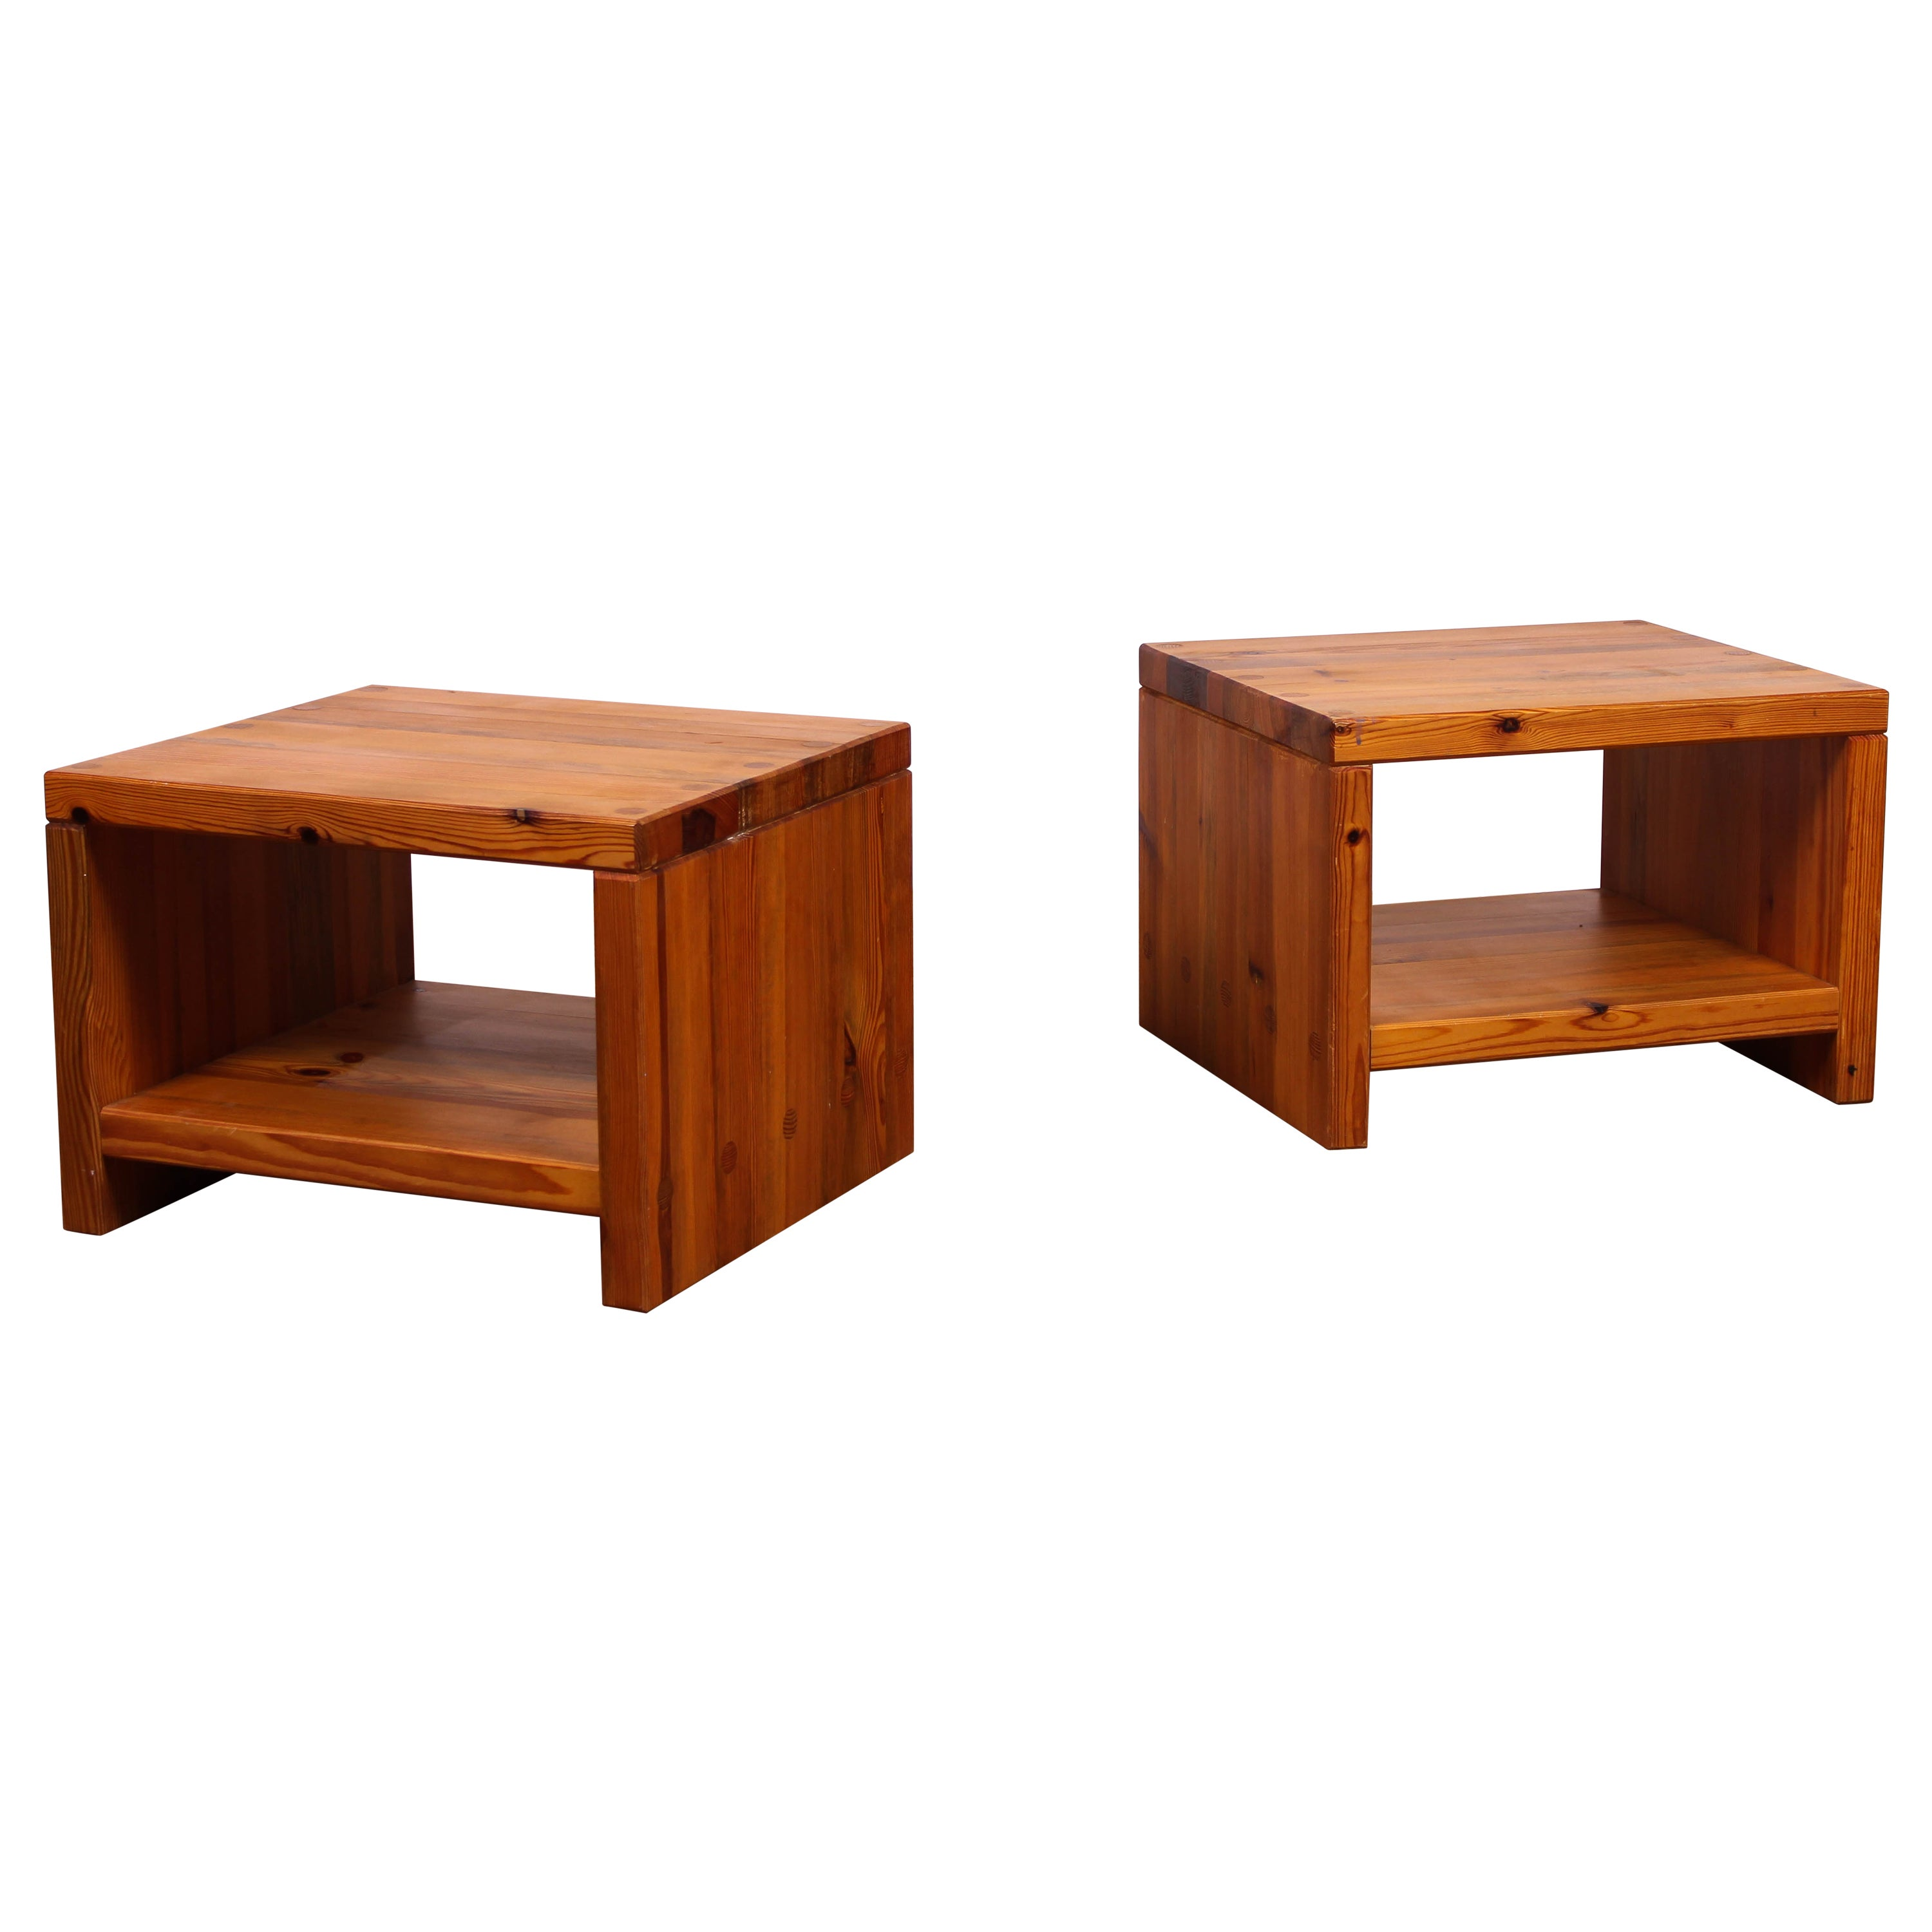 Midcentury Pine Side Tables By Sven Larsson For Mobel Shop